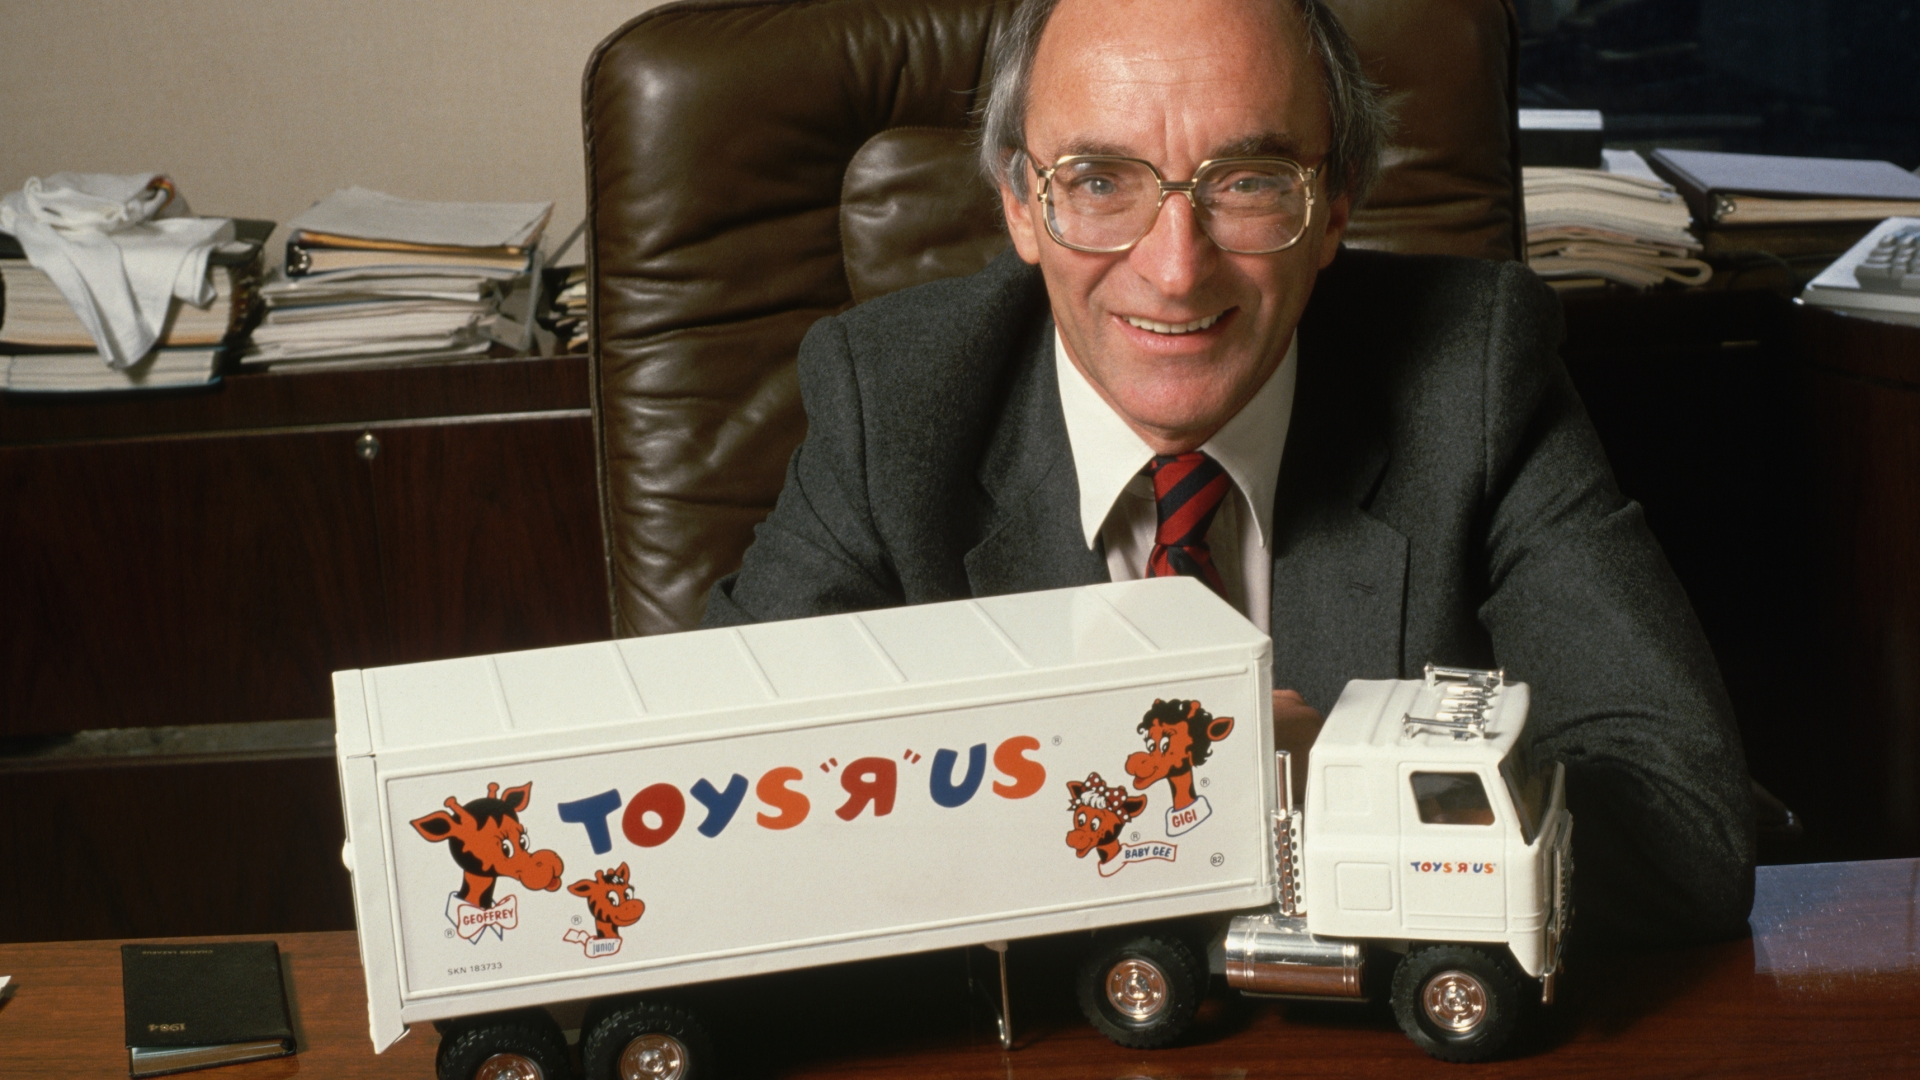 Charles Lazarus, founder of Toys R Us. (Credit: Jacques M. Chenet/CORBIS/Corbis via Getty Images)